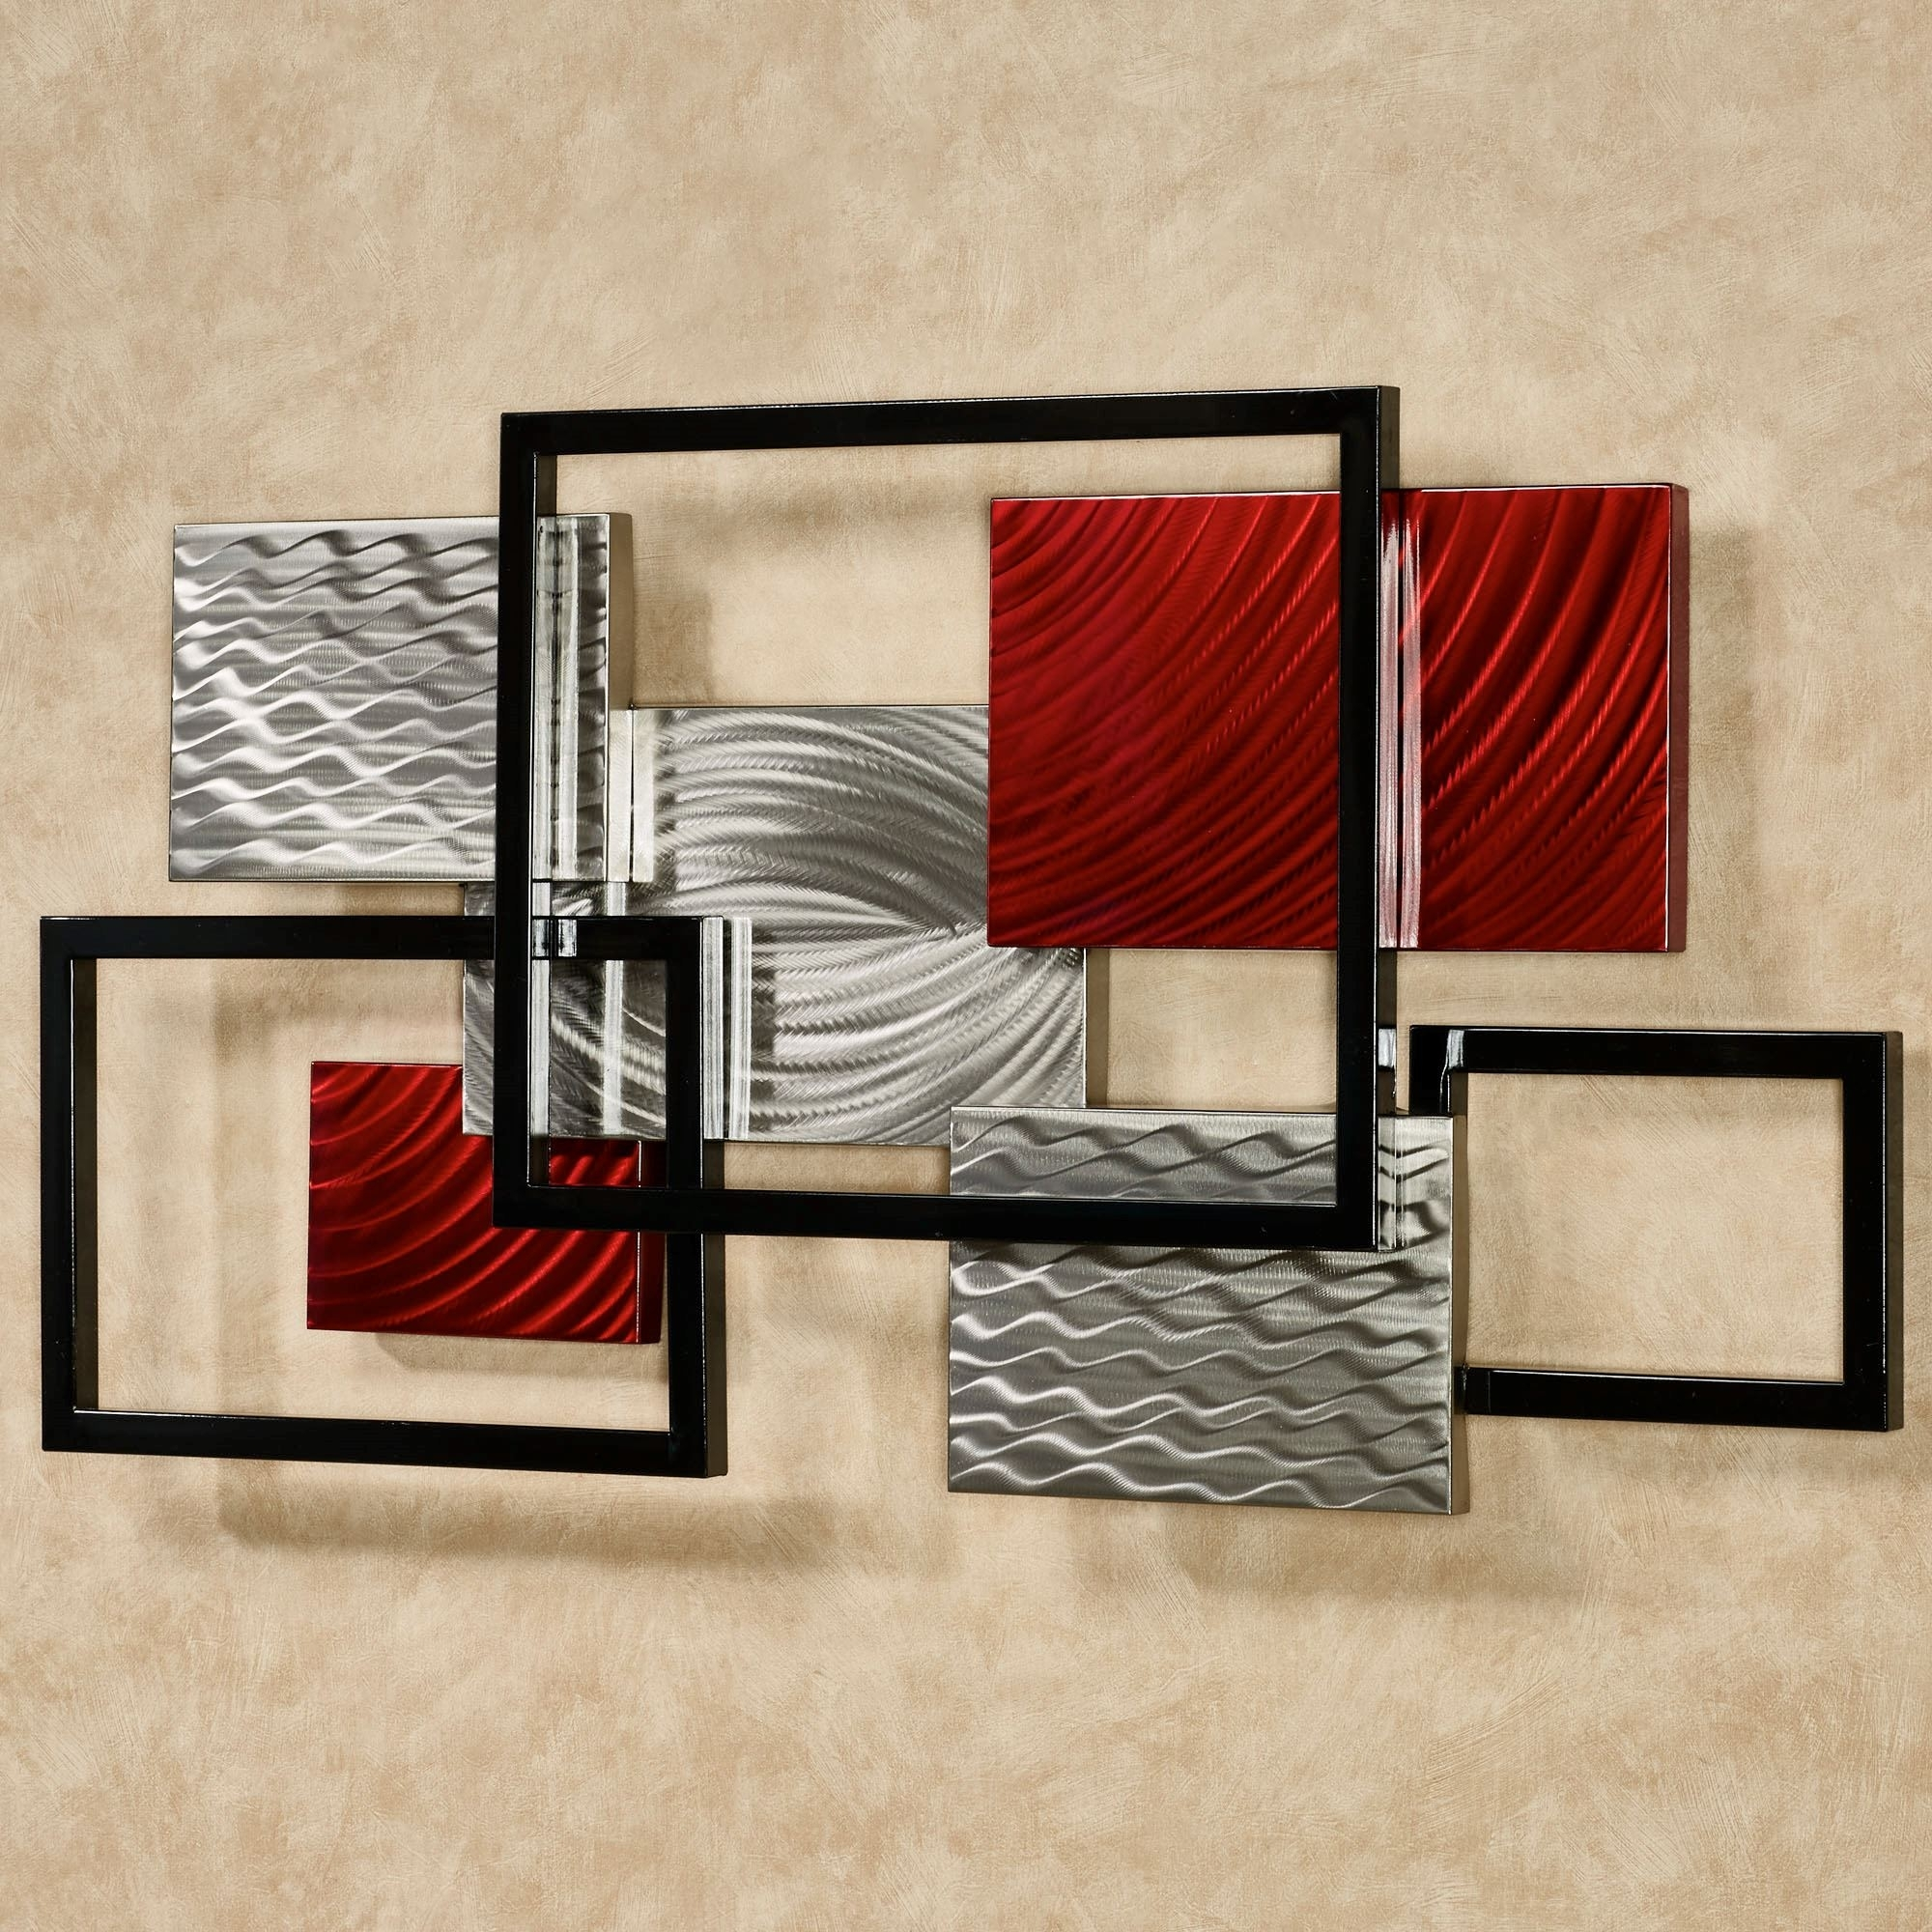 Contemporary Metal Wall Art Sculptures   Touch Of Class For Most Recent Abstract Geometric Metal Wall Art (View 7 of 20)